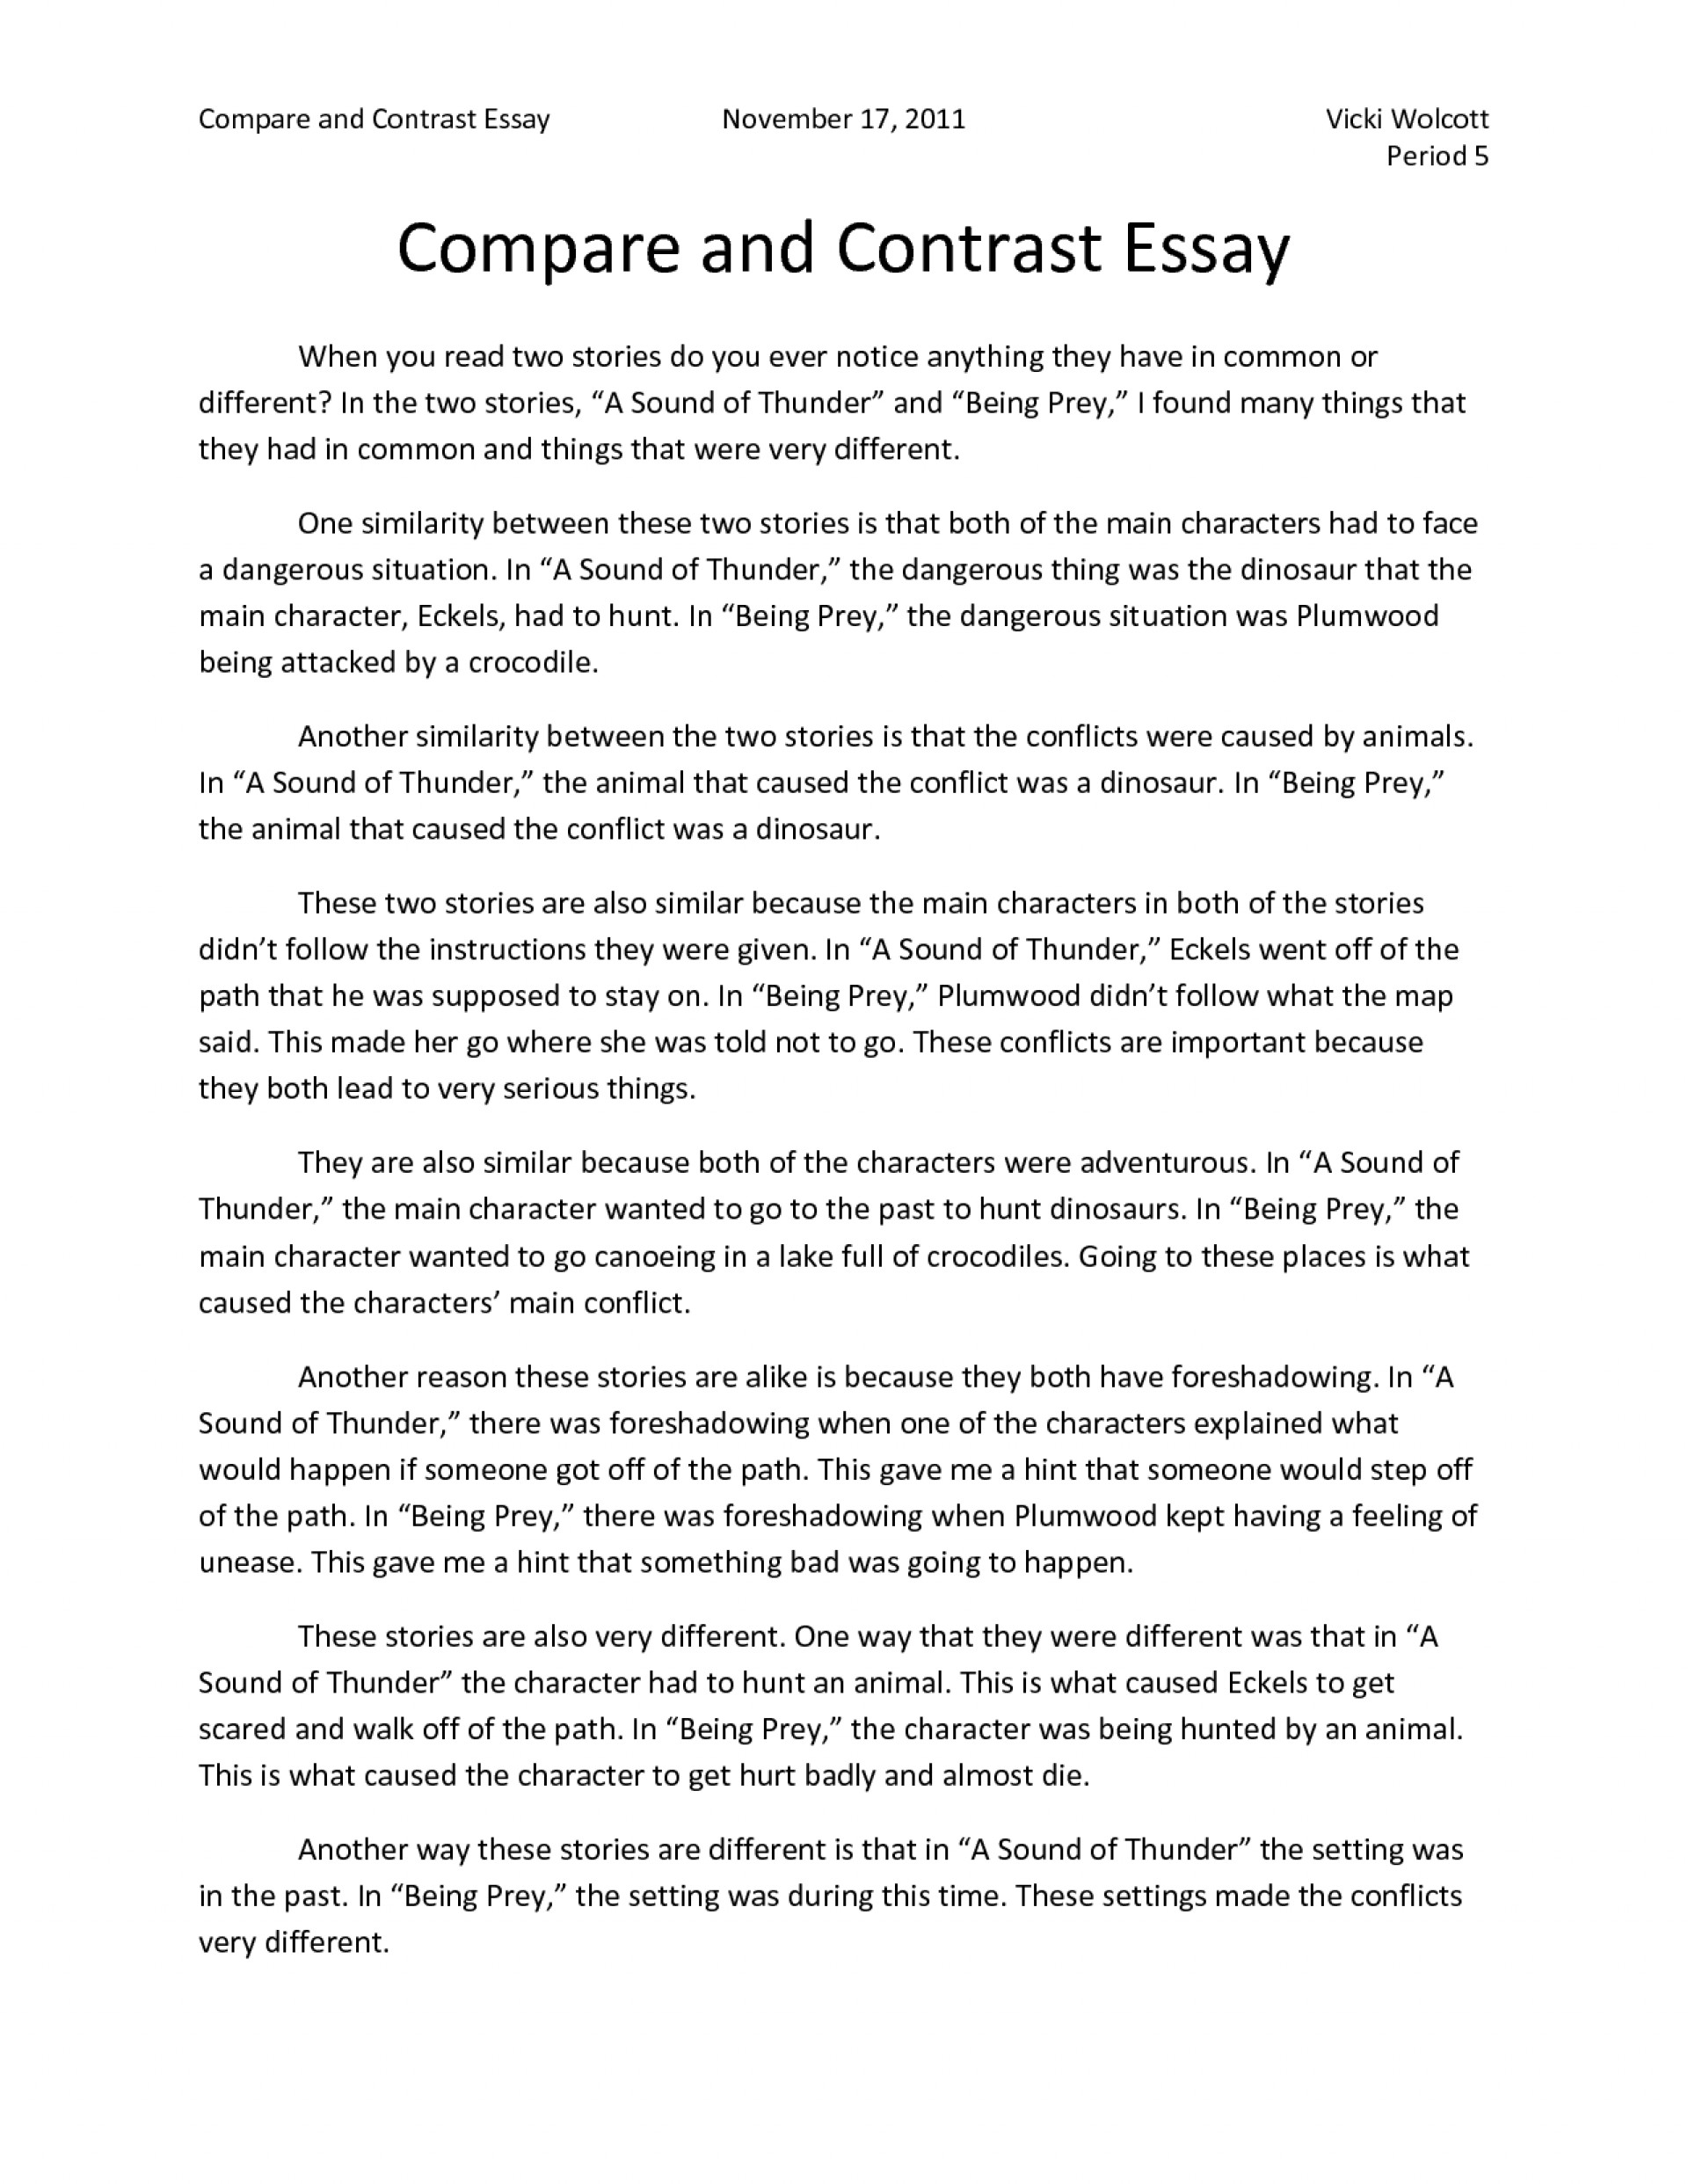 007 Comparison Essay Topics Compare And Contrast Basic Staggering Esl Examples For Students Middle School 1920